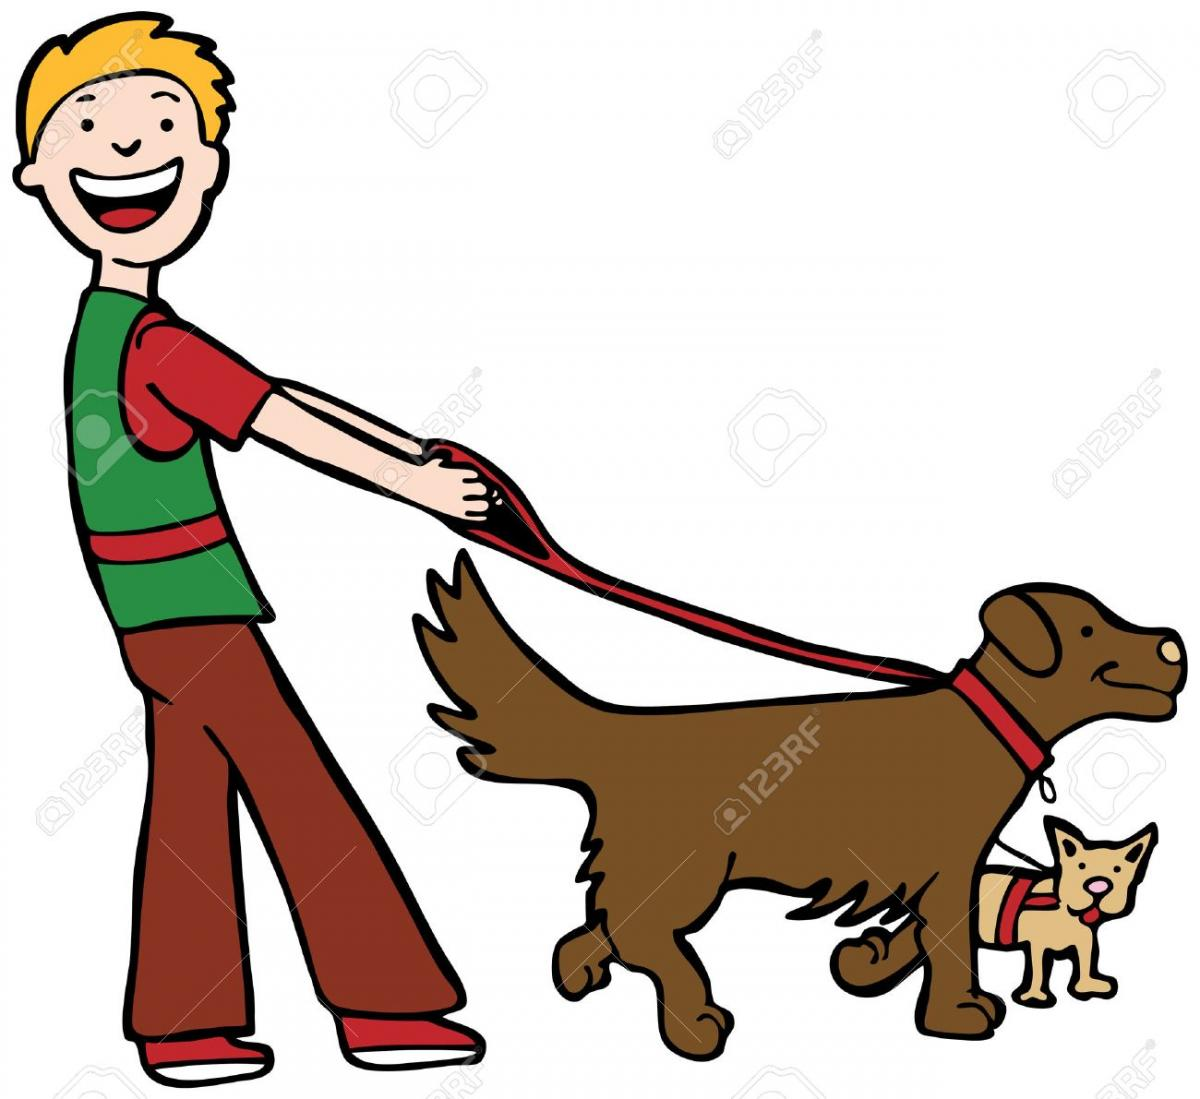 dog-walker-man-walking-two-dogs-.jpg